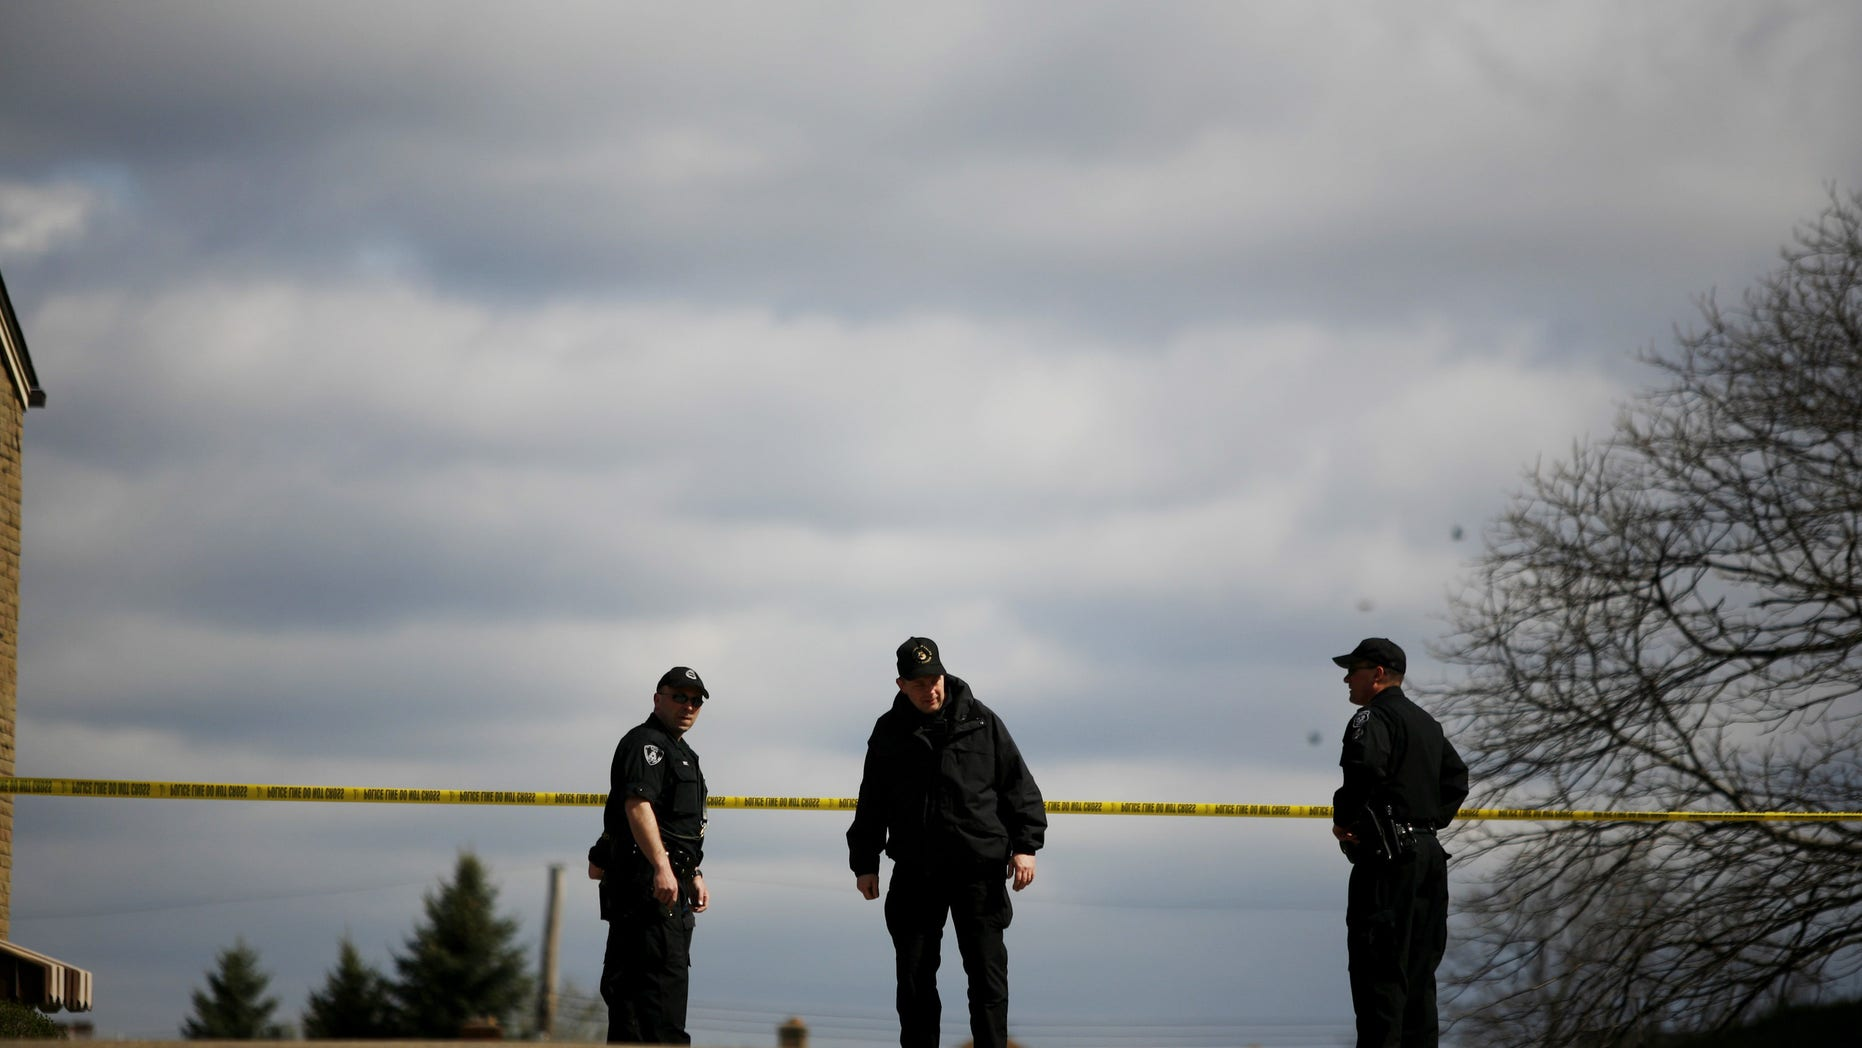 PITTSBURGH - APRIL 4:  Pittsburgh Police officers watch over the crime scene from a nearby corner April 4, 2009 in Pittsburgh, Pennsylvania. Five police officers were shot during a standoff with a suspect in the Stanton Heights neighborhood of Pittsburgh, after police responded to a domestic dispute.  (Photo by Ross Mantle/Getty Images)